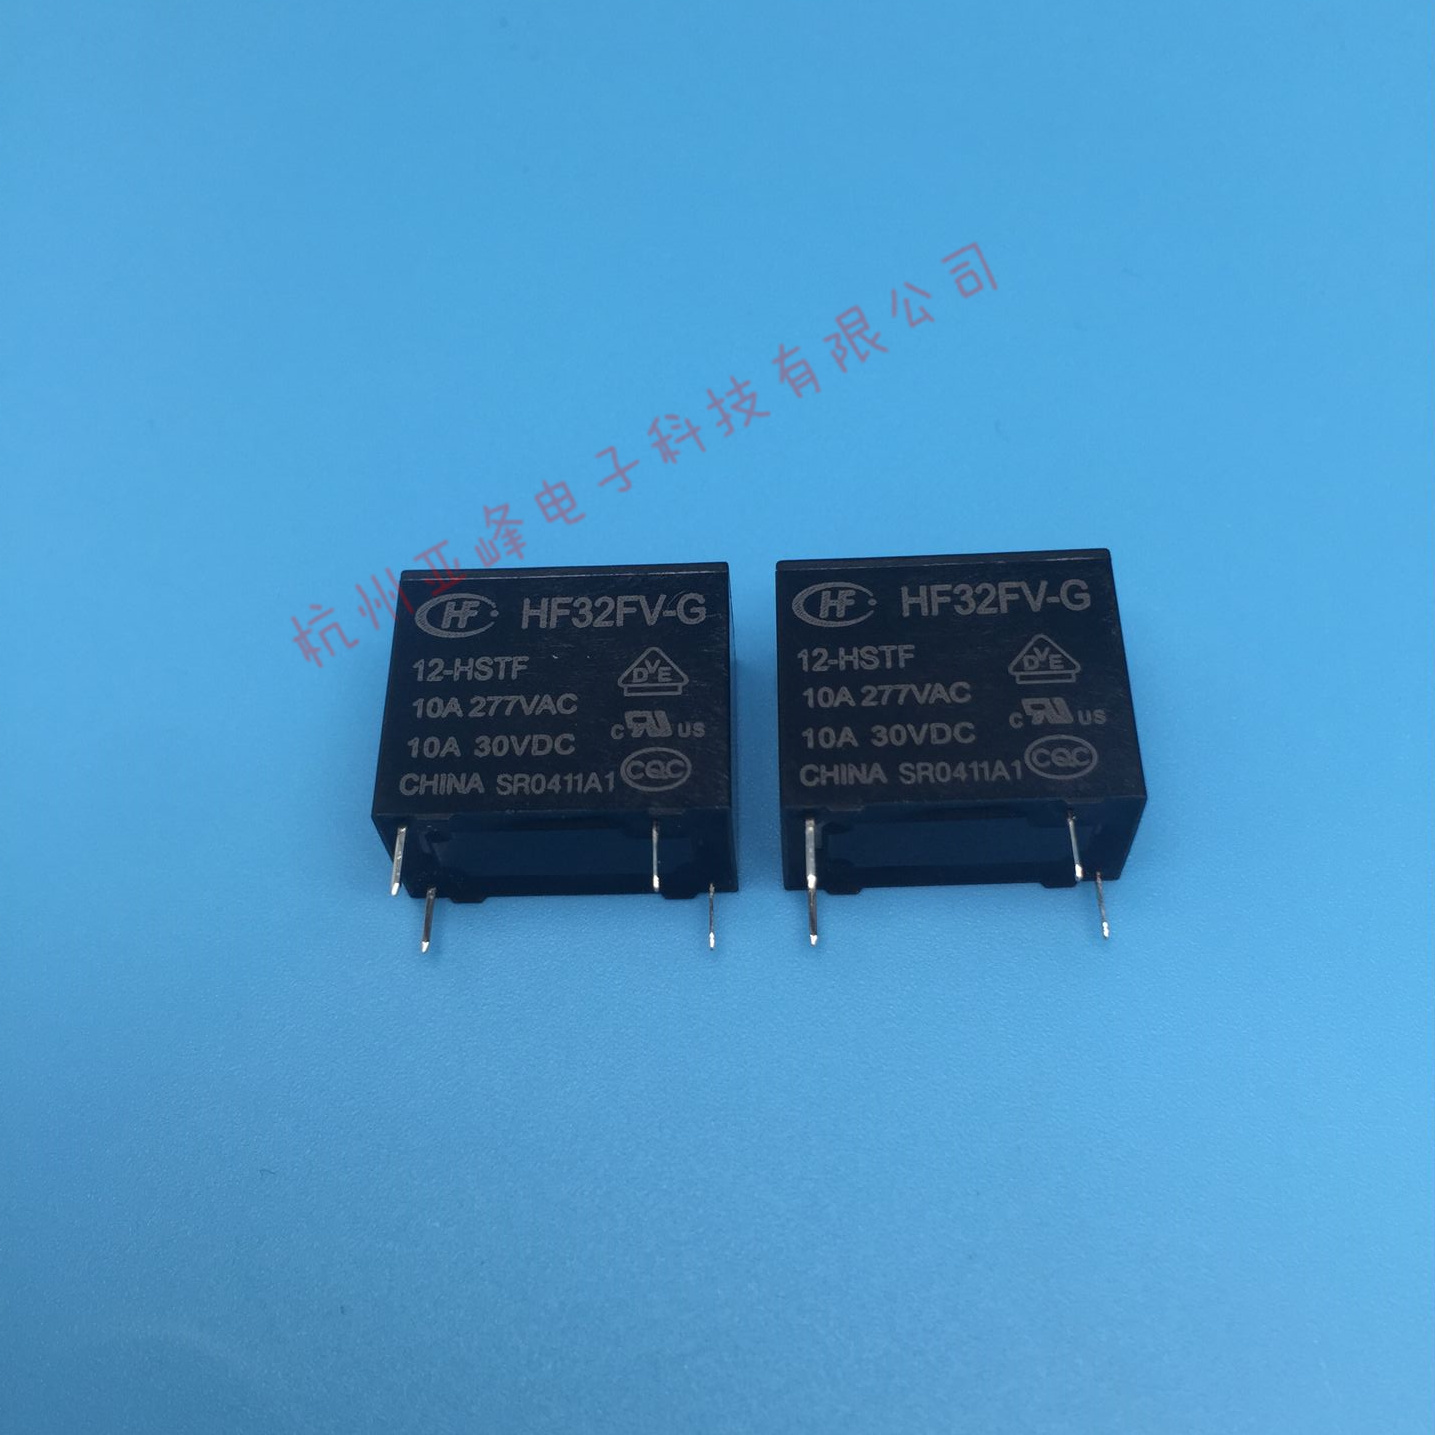 Hf32fv G 12 Hstf Macro Relay 12vdc Set Of Normally Open 4 Feet 10a277vac High Load Type